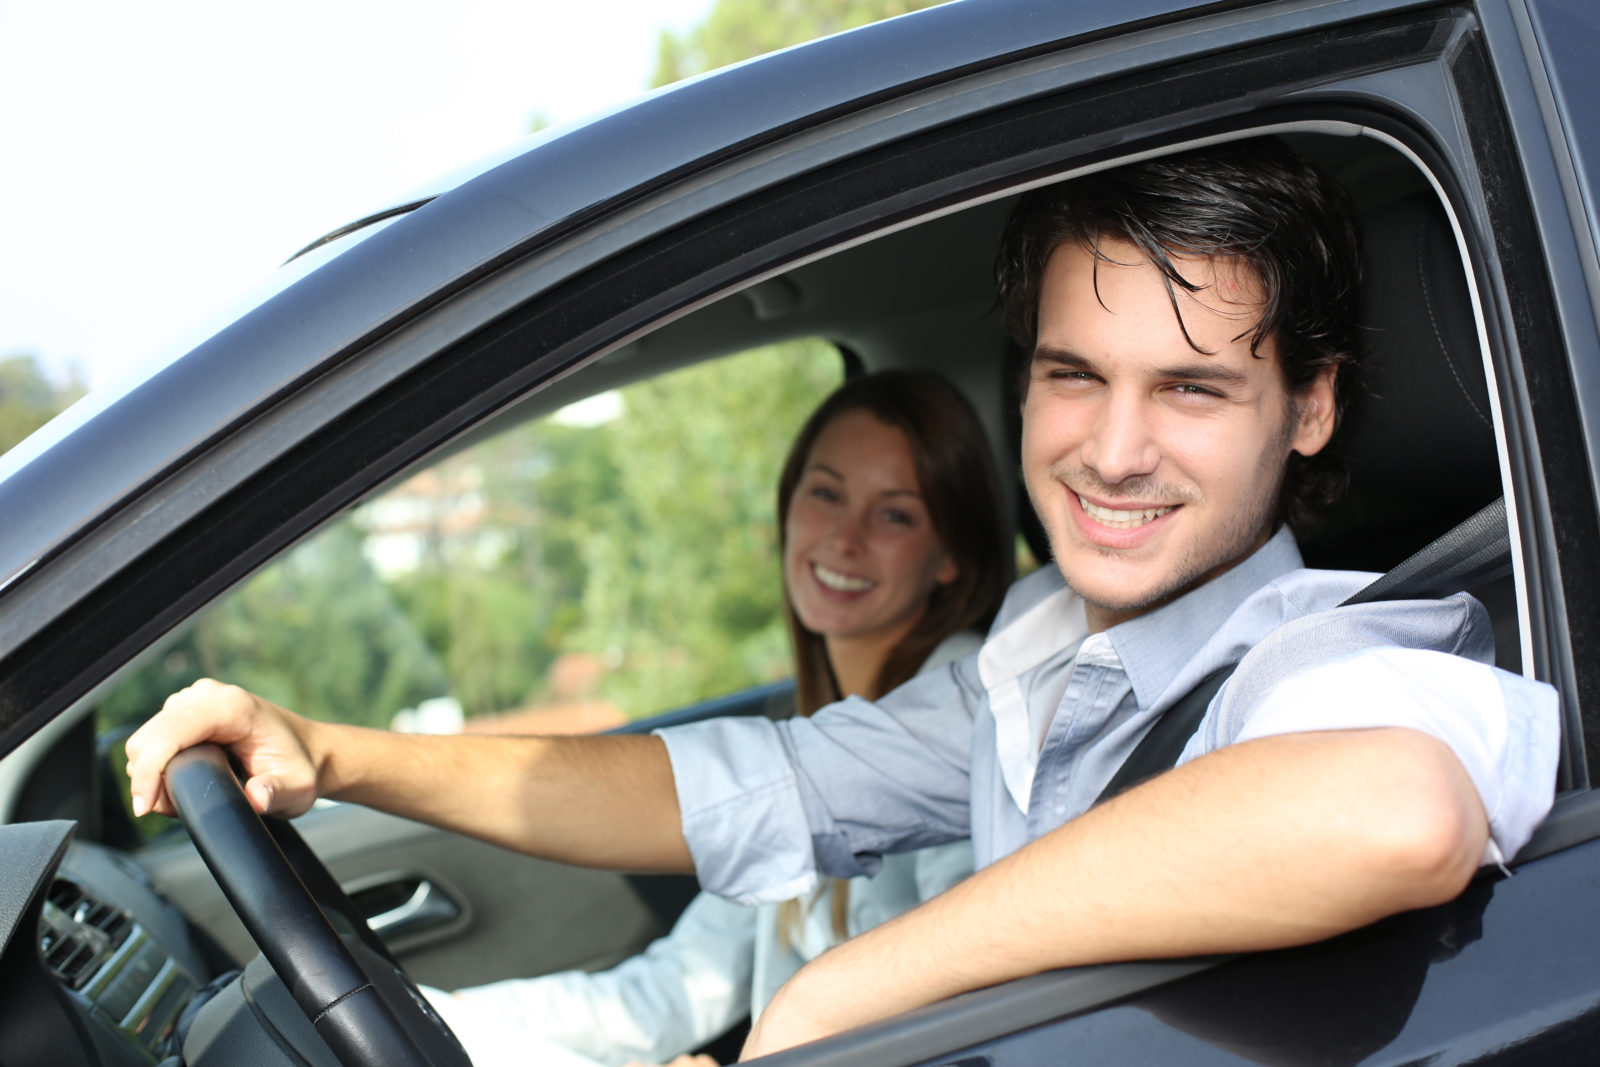 Car Insurance and Auto Insurance in Braintree, Hingham, Laconia, Meredith NH